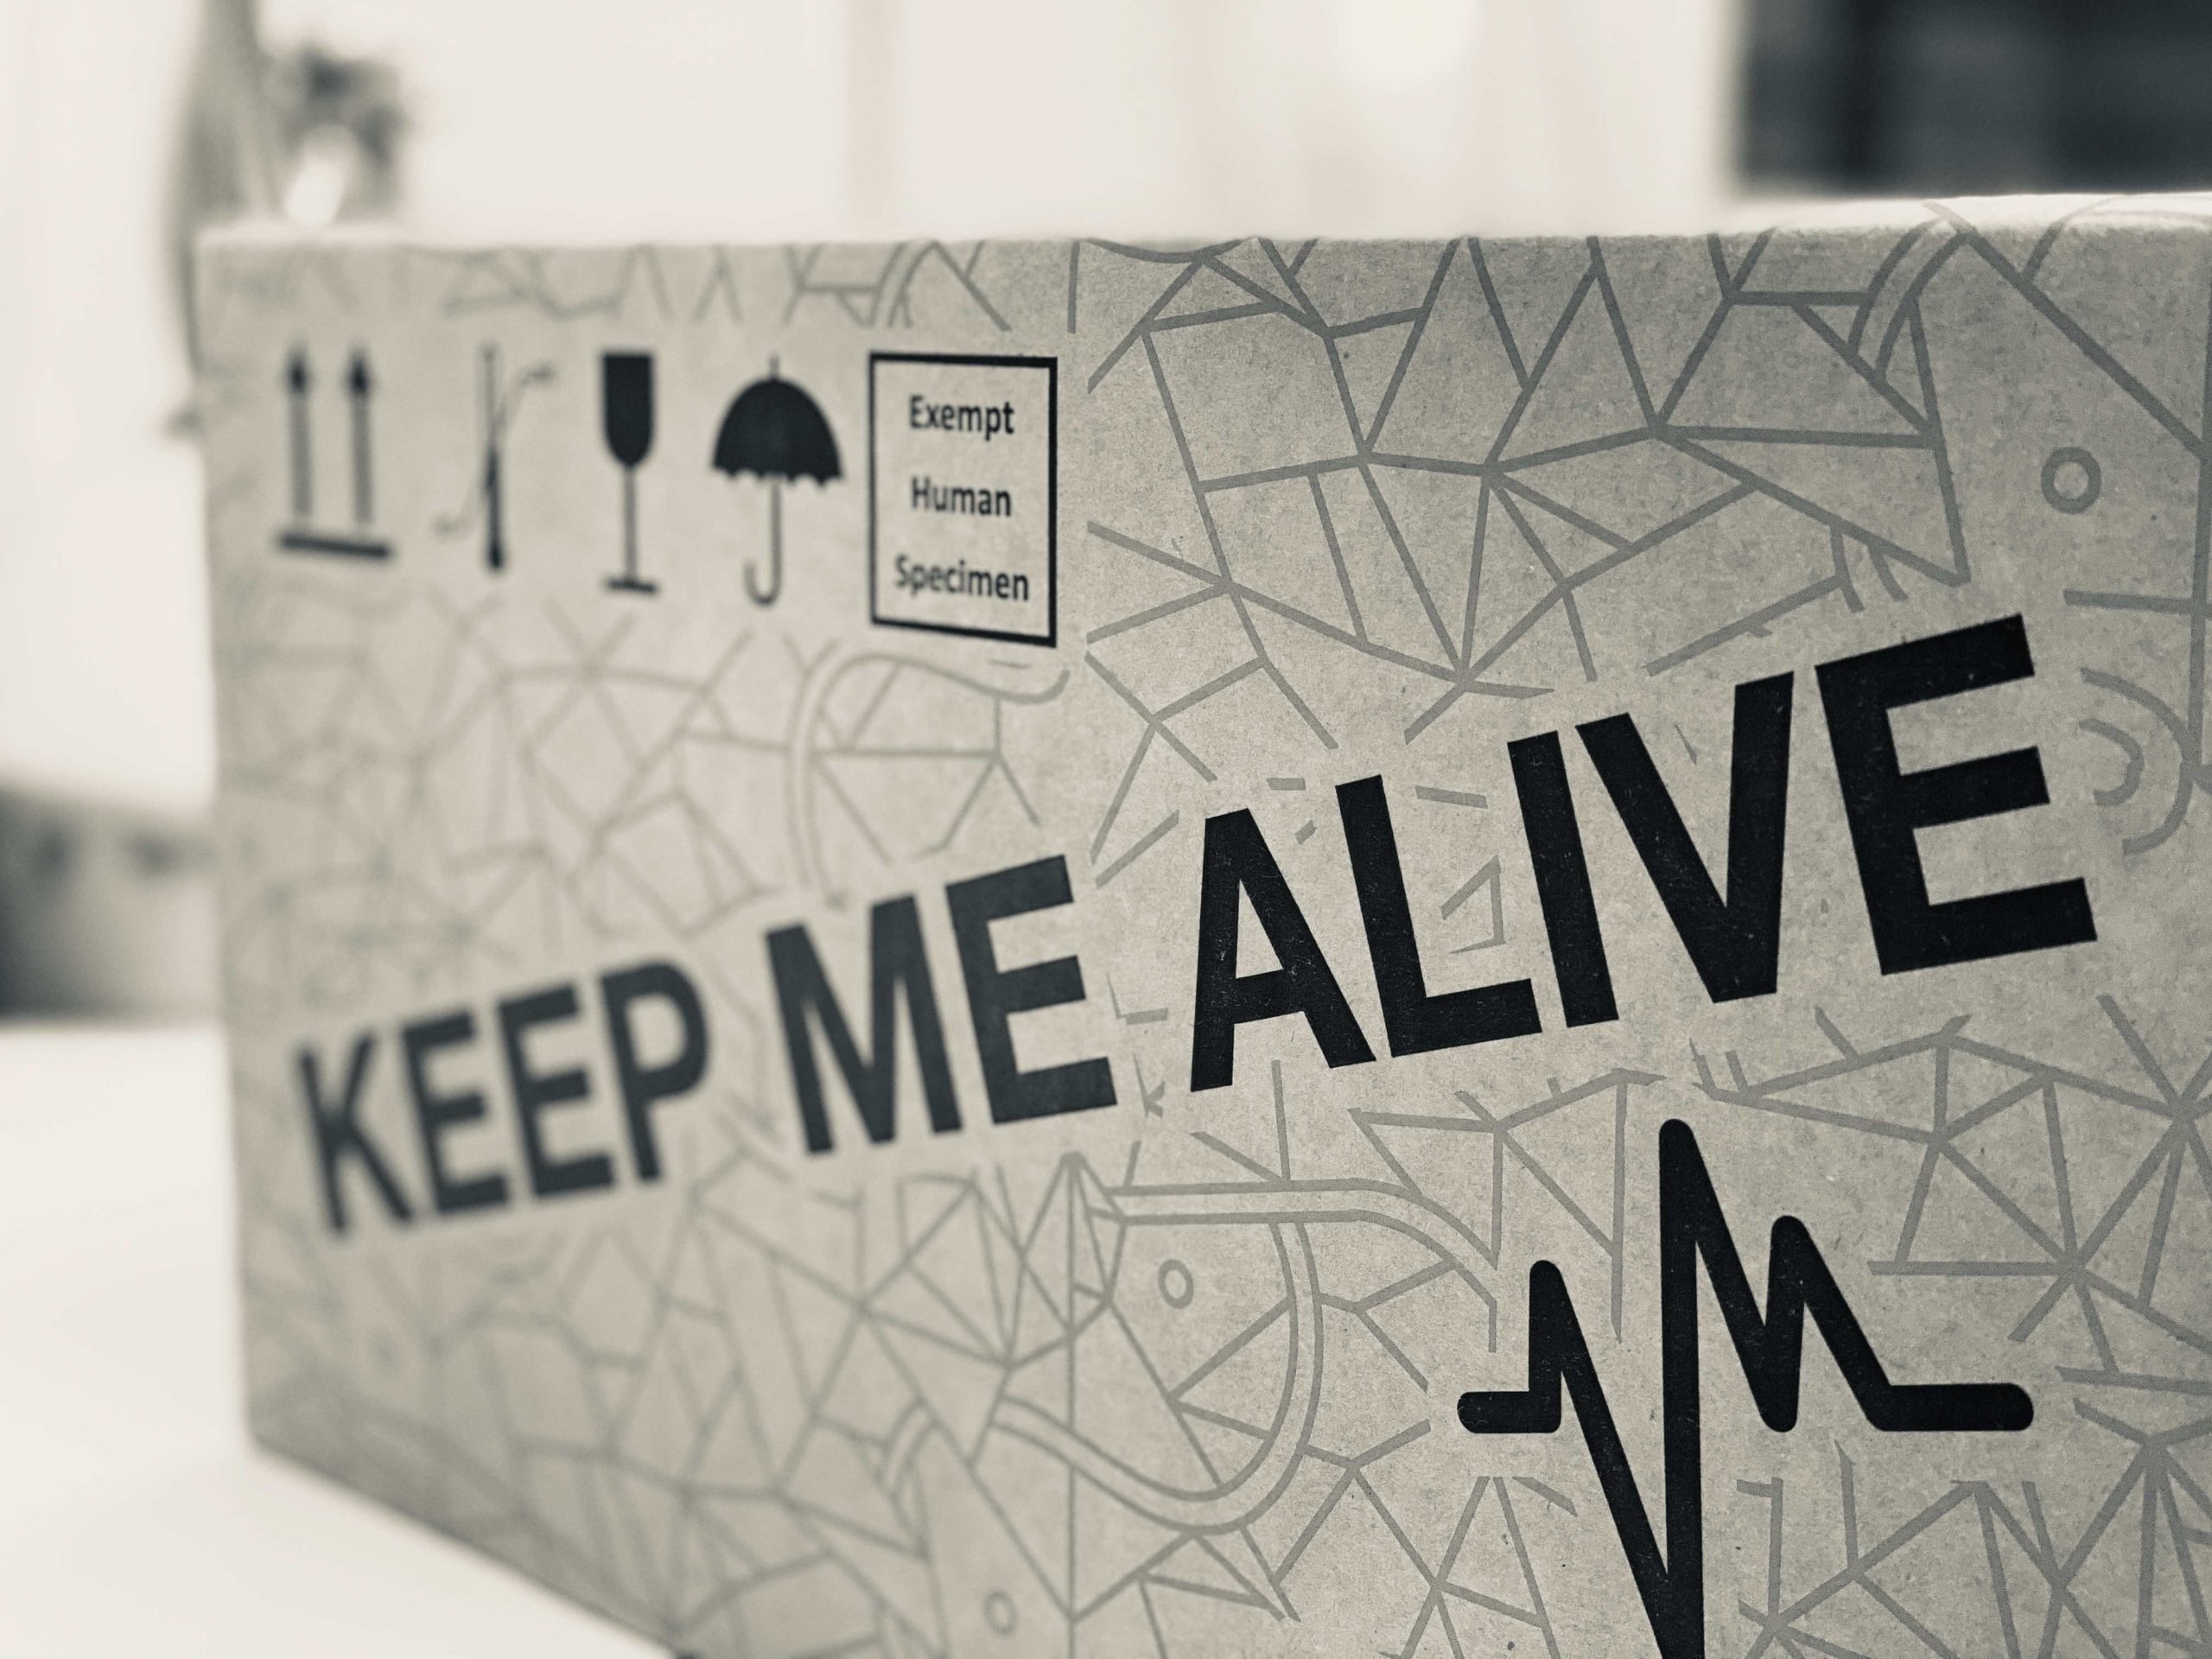 Preview of the new packaging with icons, keep me alive inscription and ECG icon.